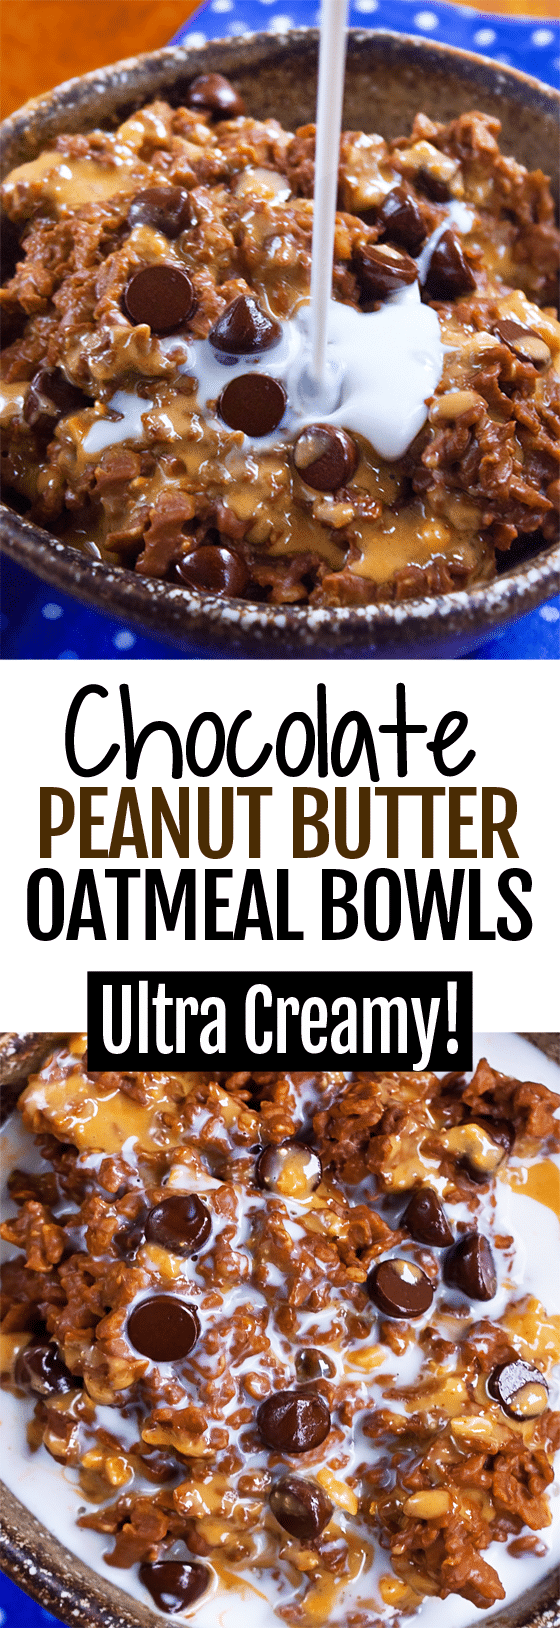 Single Serving Chocolate Peanut Butter Cup Oatmeal Bowls